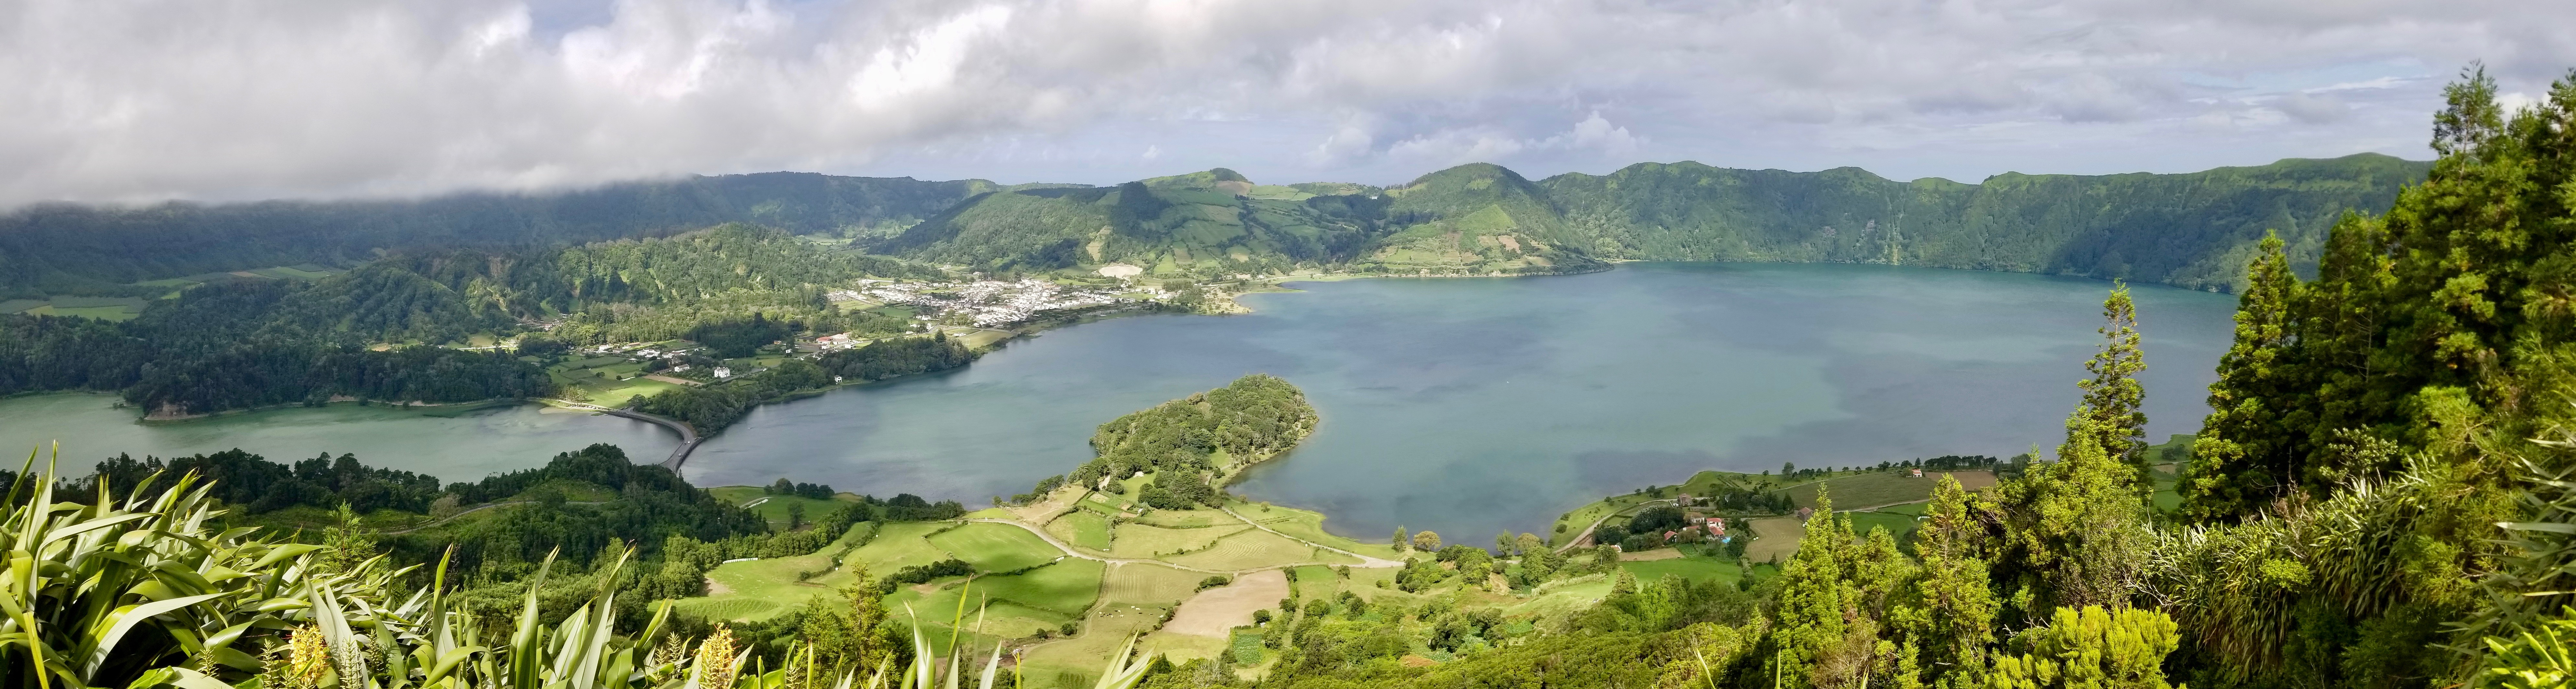 A panoramic view of Sete Cidades, a parish of the municipality of São Miguel Island's Ponta Delgada, along with the two volcanic-crater lakes, Lagoa Verde, left, and Lagoa Azul, right. Photo taken Sept 17, 2019.